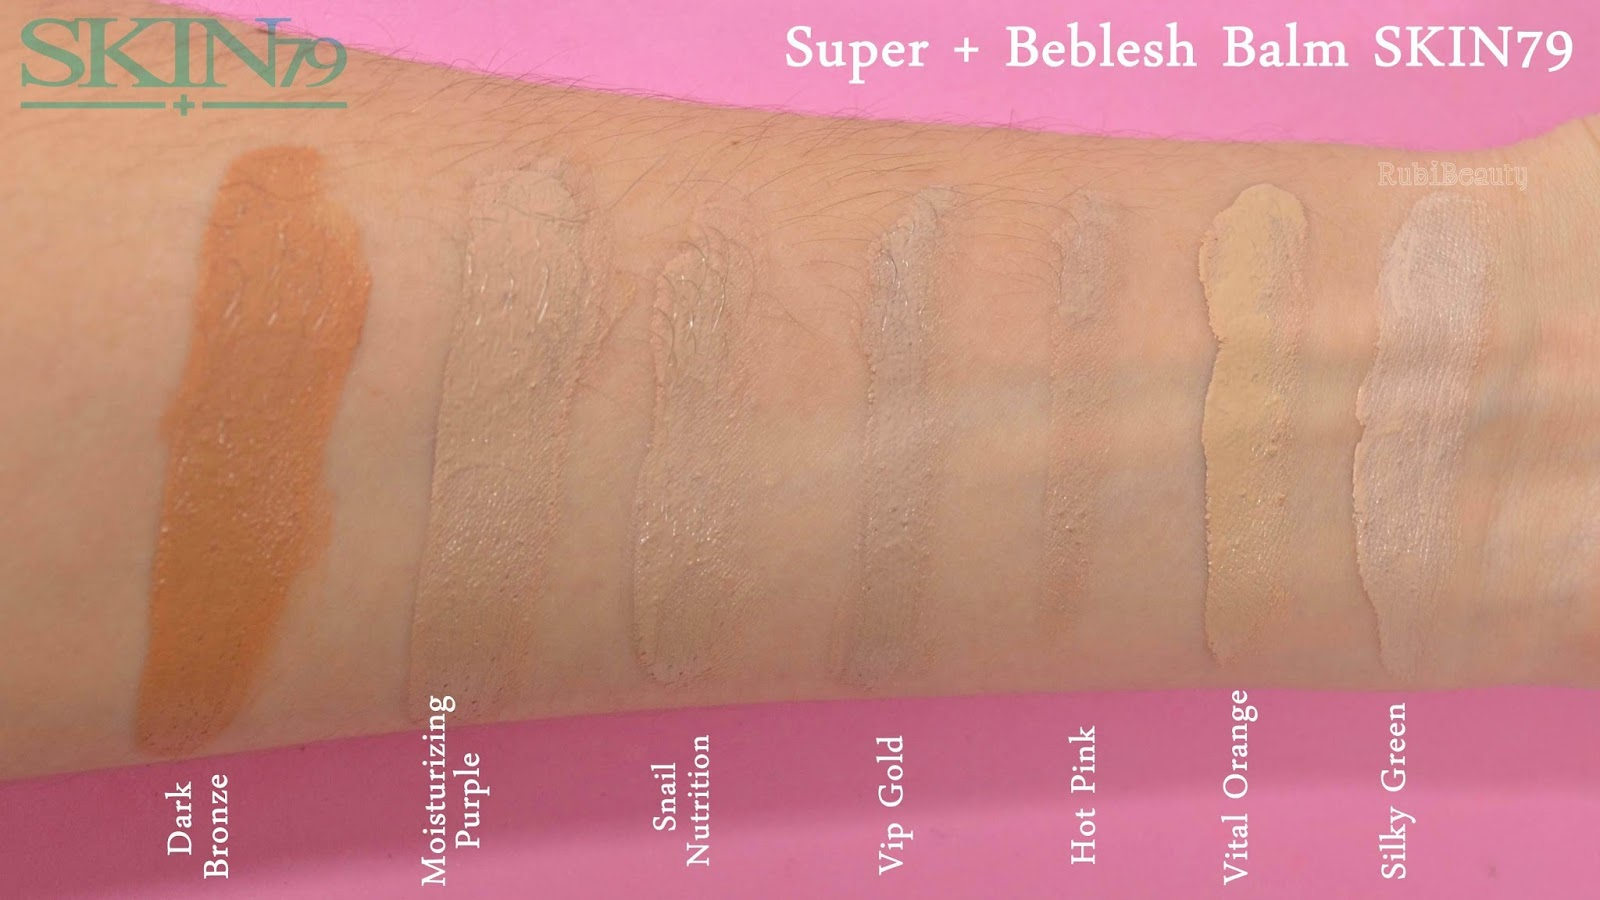 rubibeauty review opinion personal Super + Beblesh Balm BB Cream Skin 79 swatches Hot pink orange vip gold snail silky purple